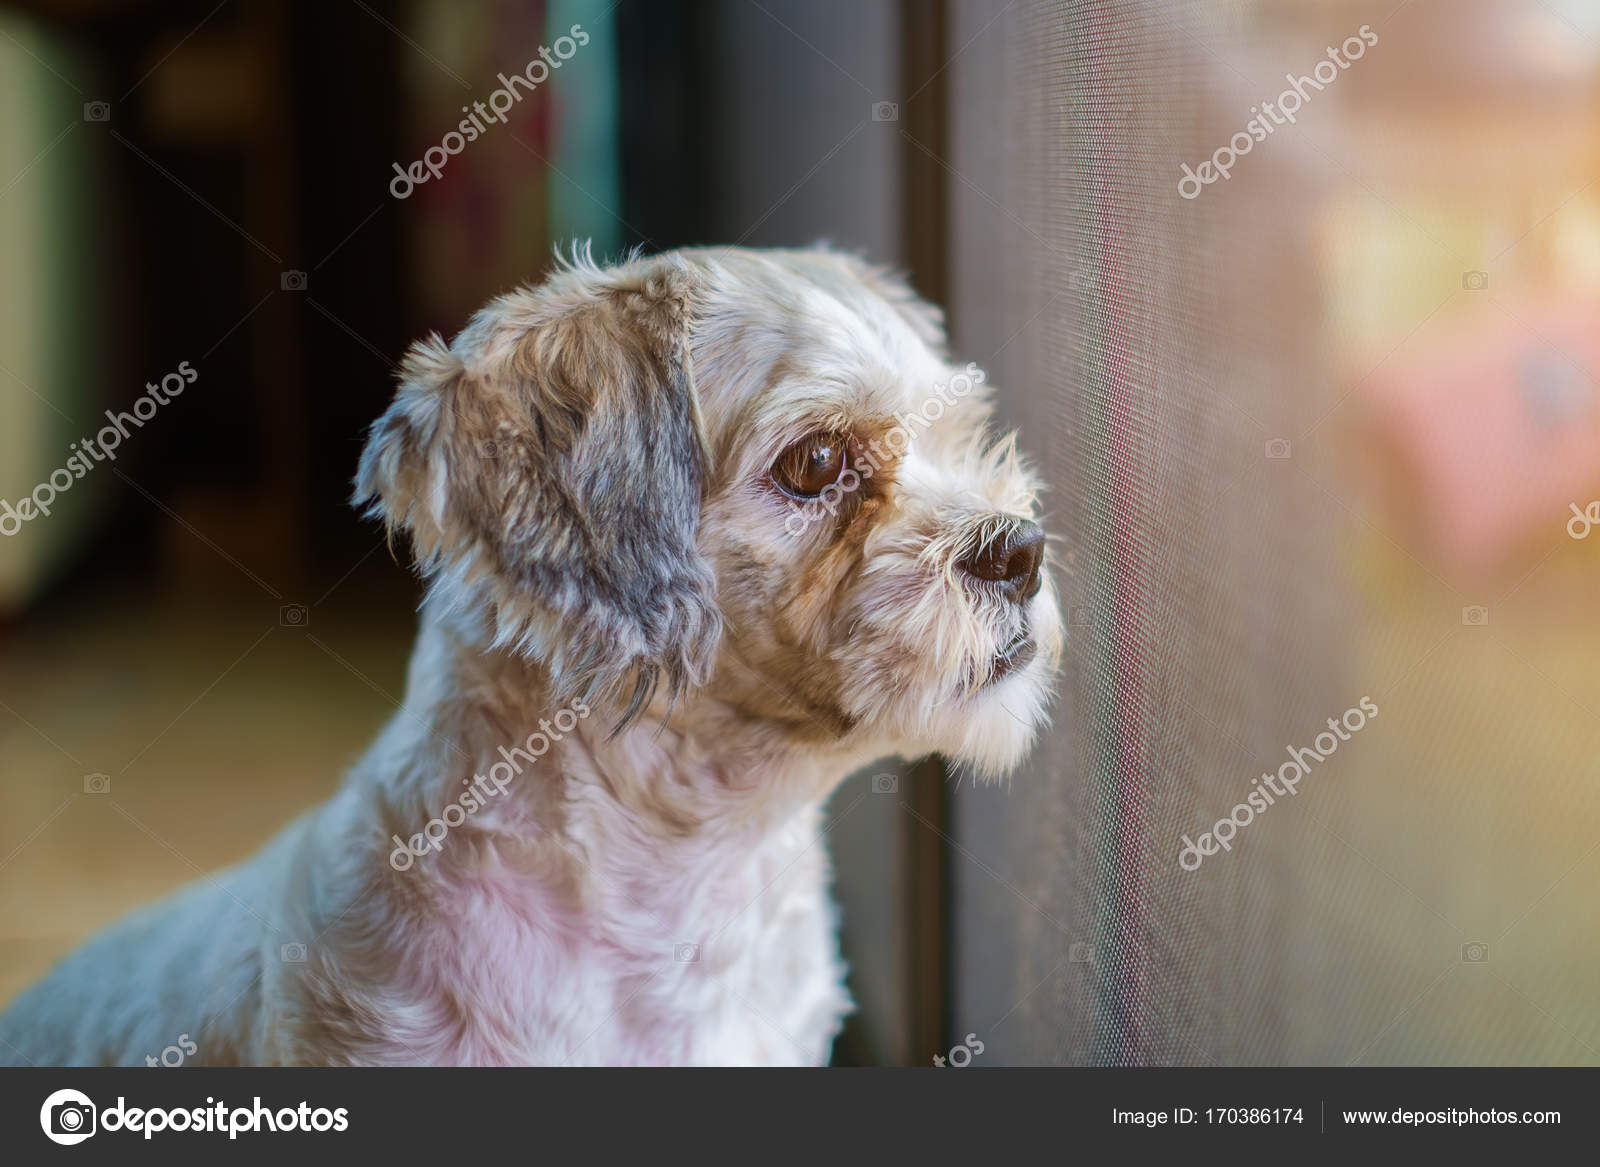 Short Hair White Shih Tzu Dog Looking For Something At The Door